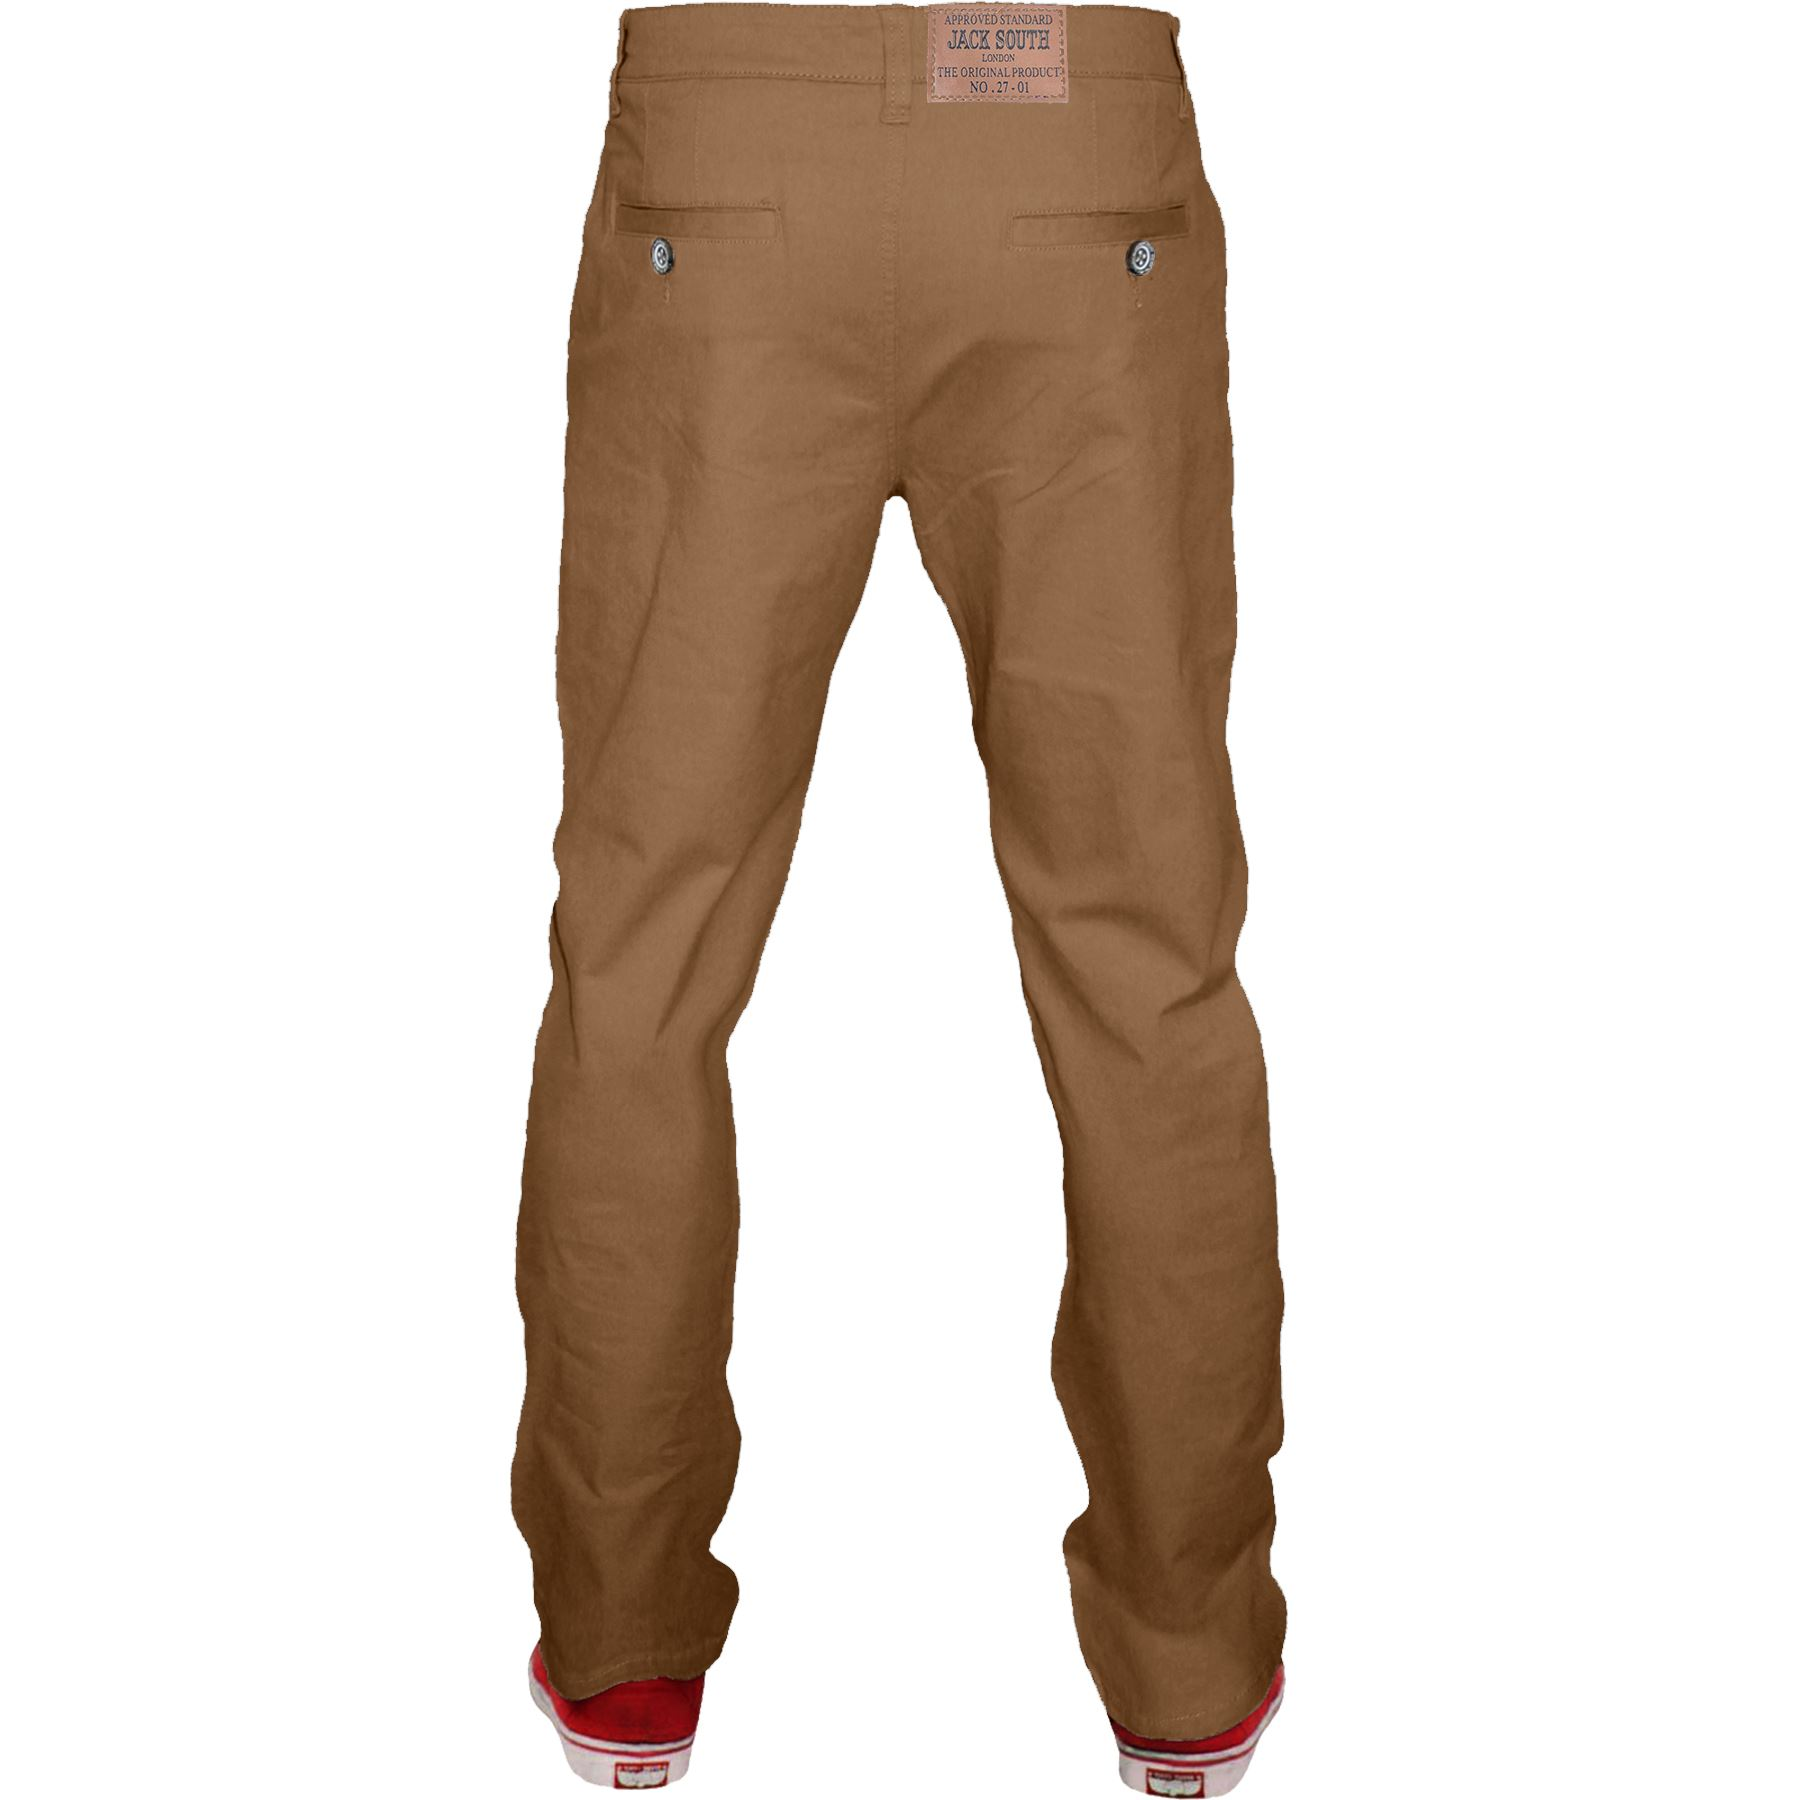 Mens-Chino-Classic-Regular-Fit-Trouser-Casual-Stretch-Spandex-Pants-Size-32-40 thumbnail 28